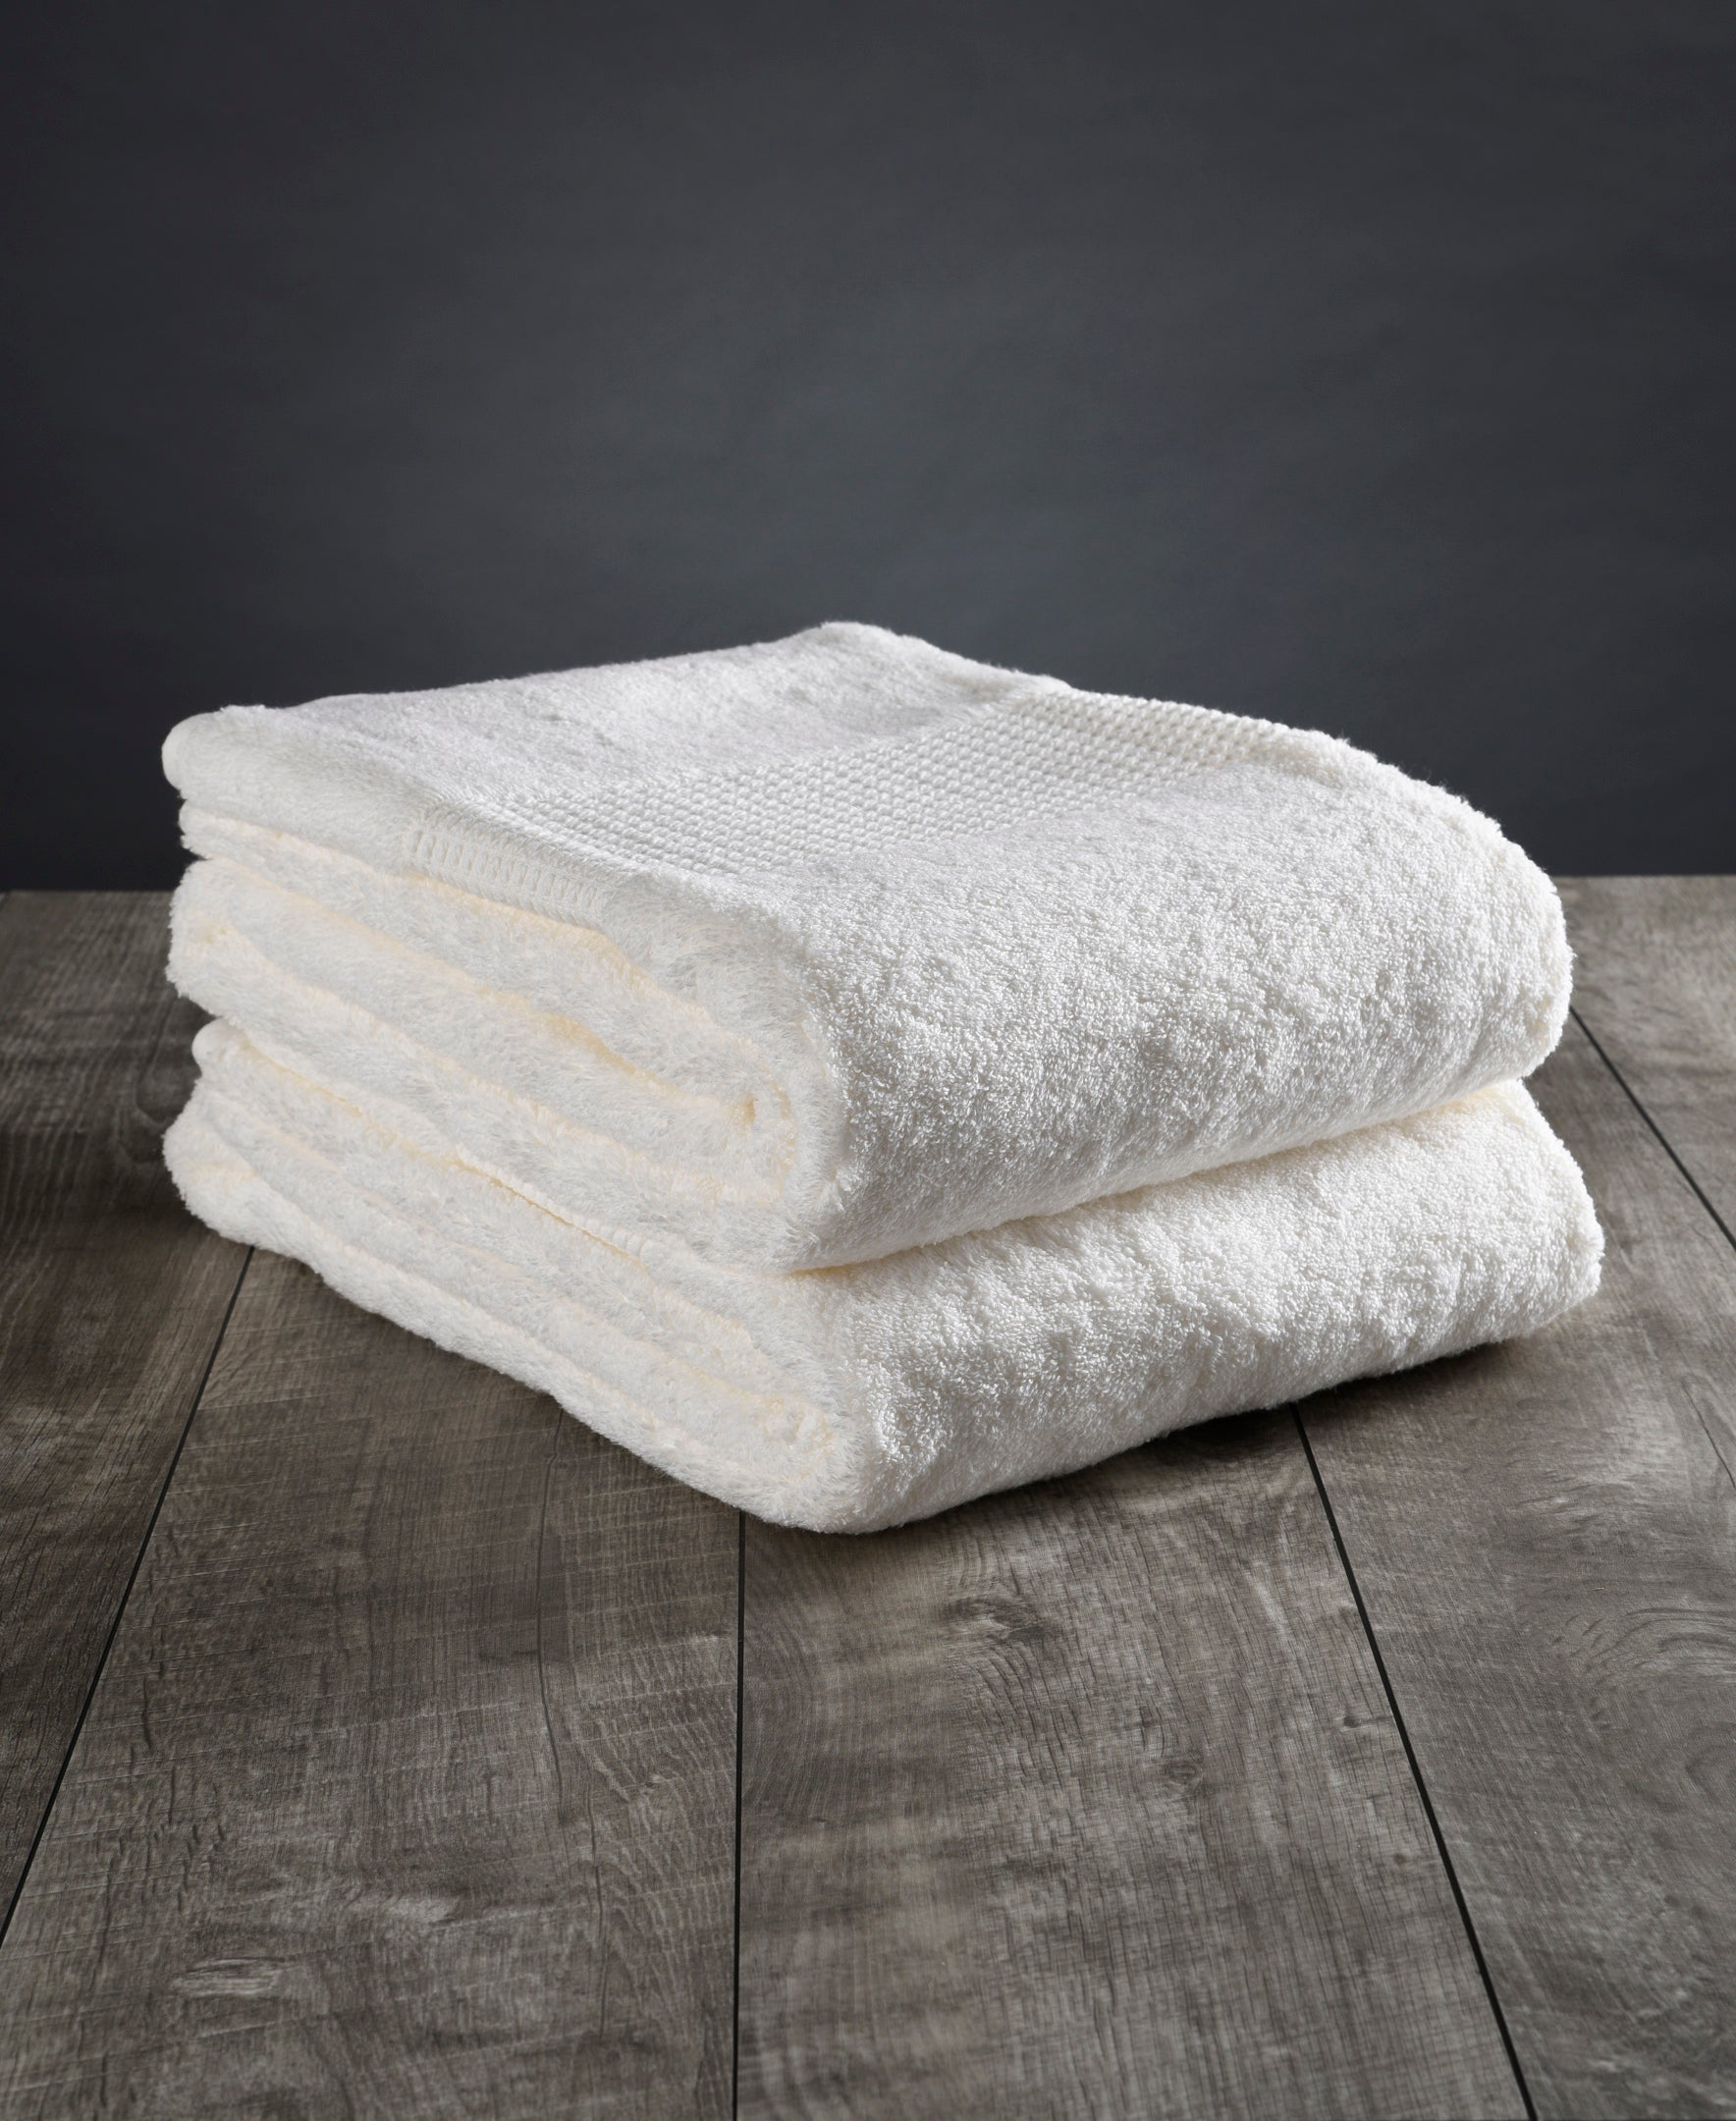 A stack of two white vegan towels.